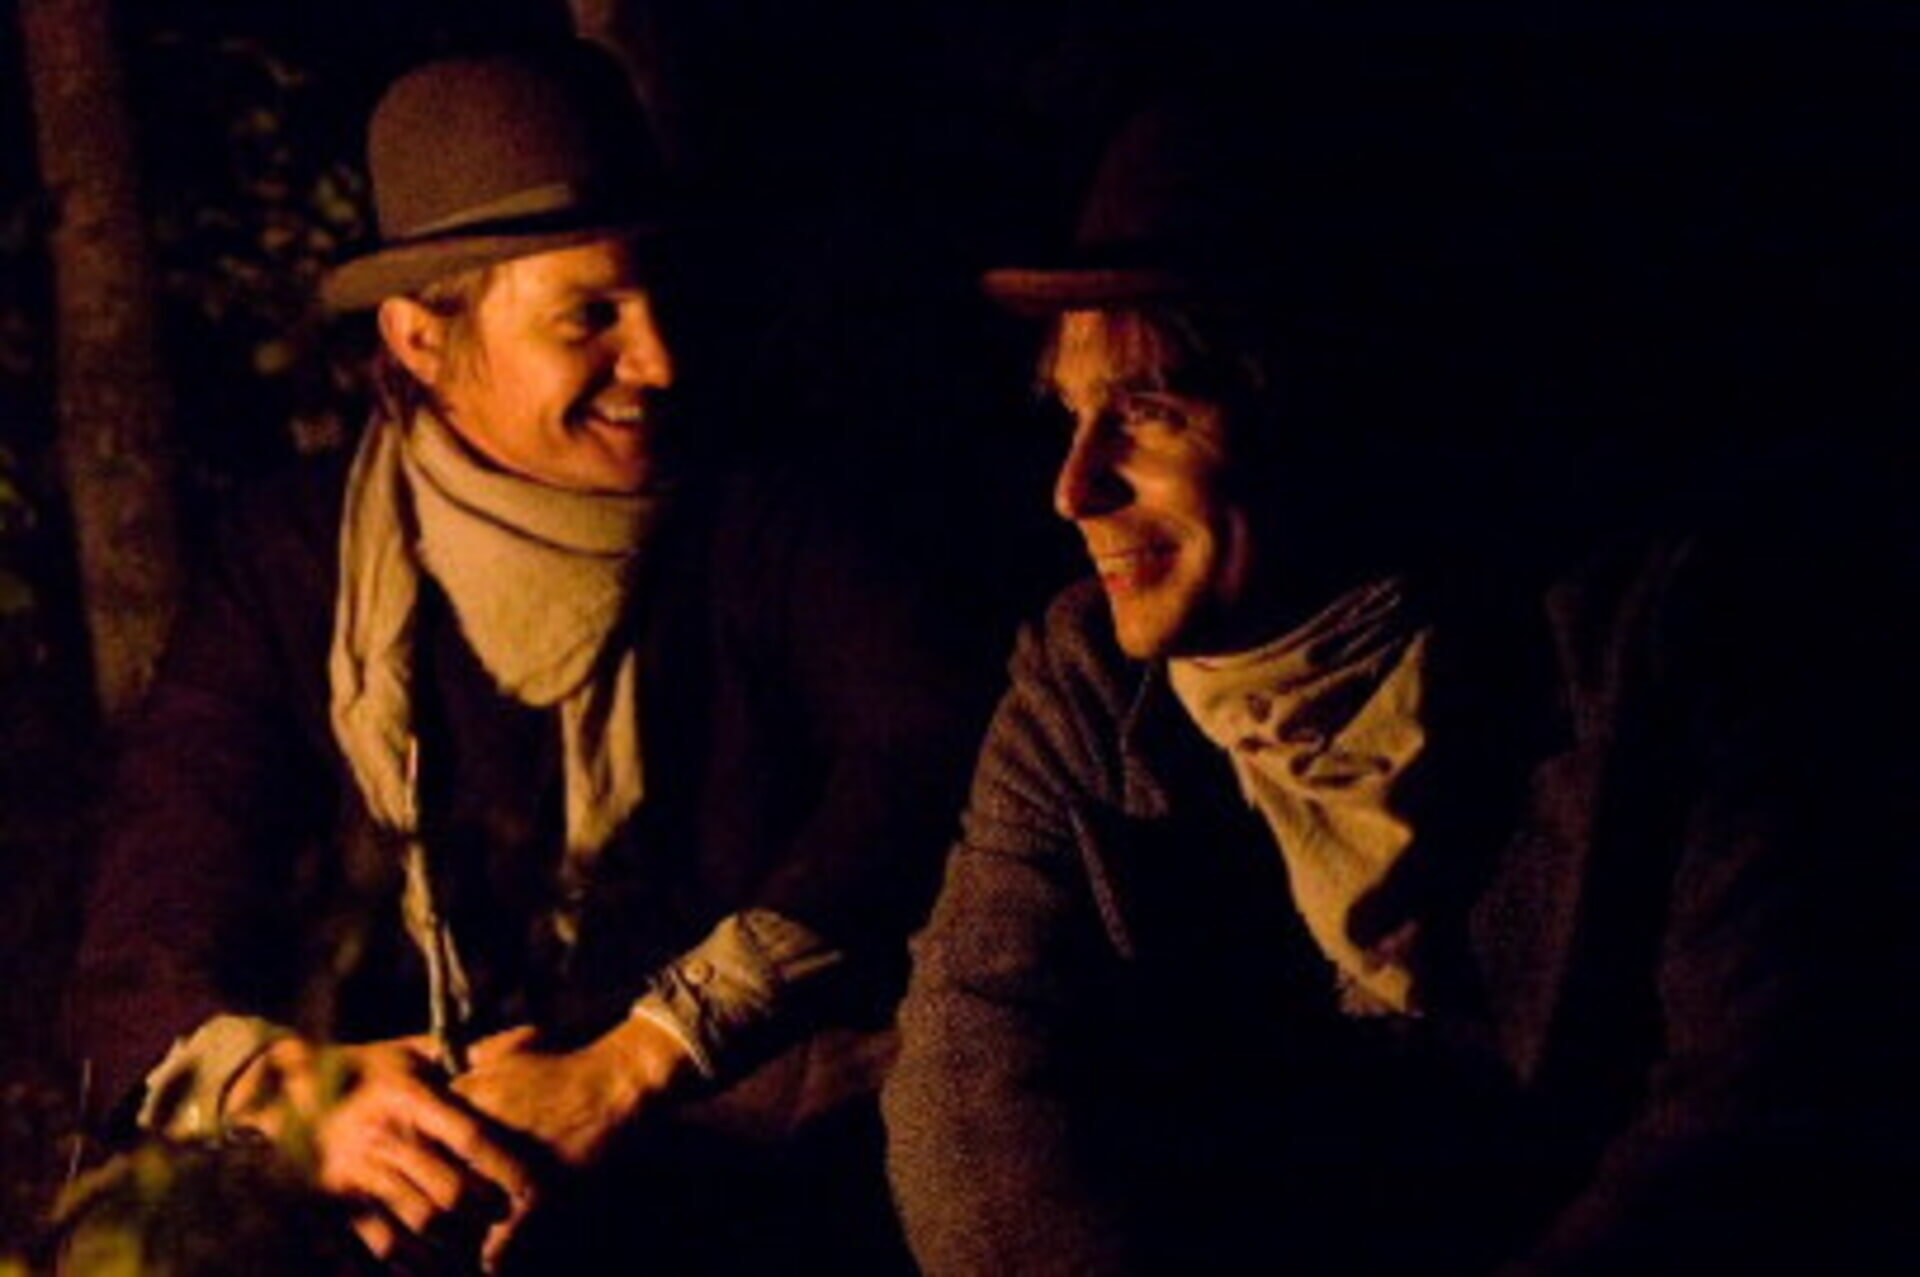 The Assassination of Jesse James by the Coward Robert Ford - Image 29